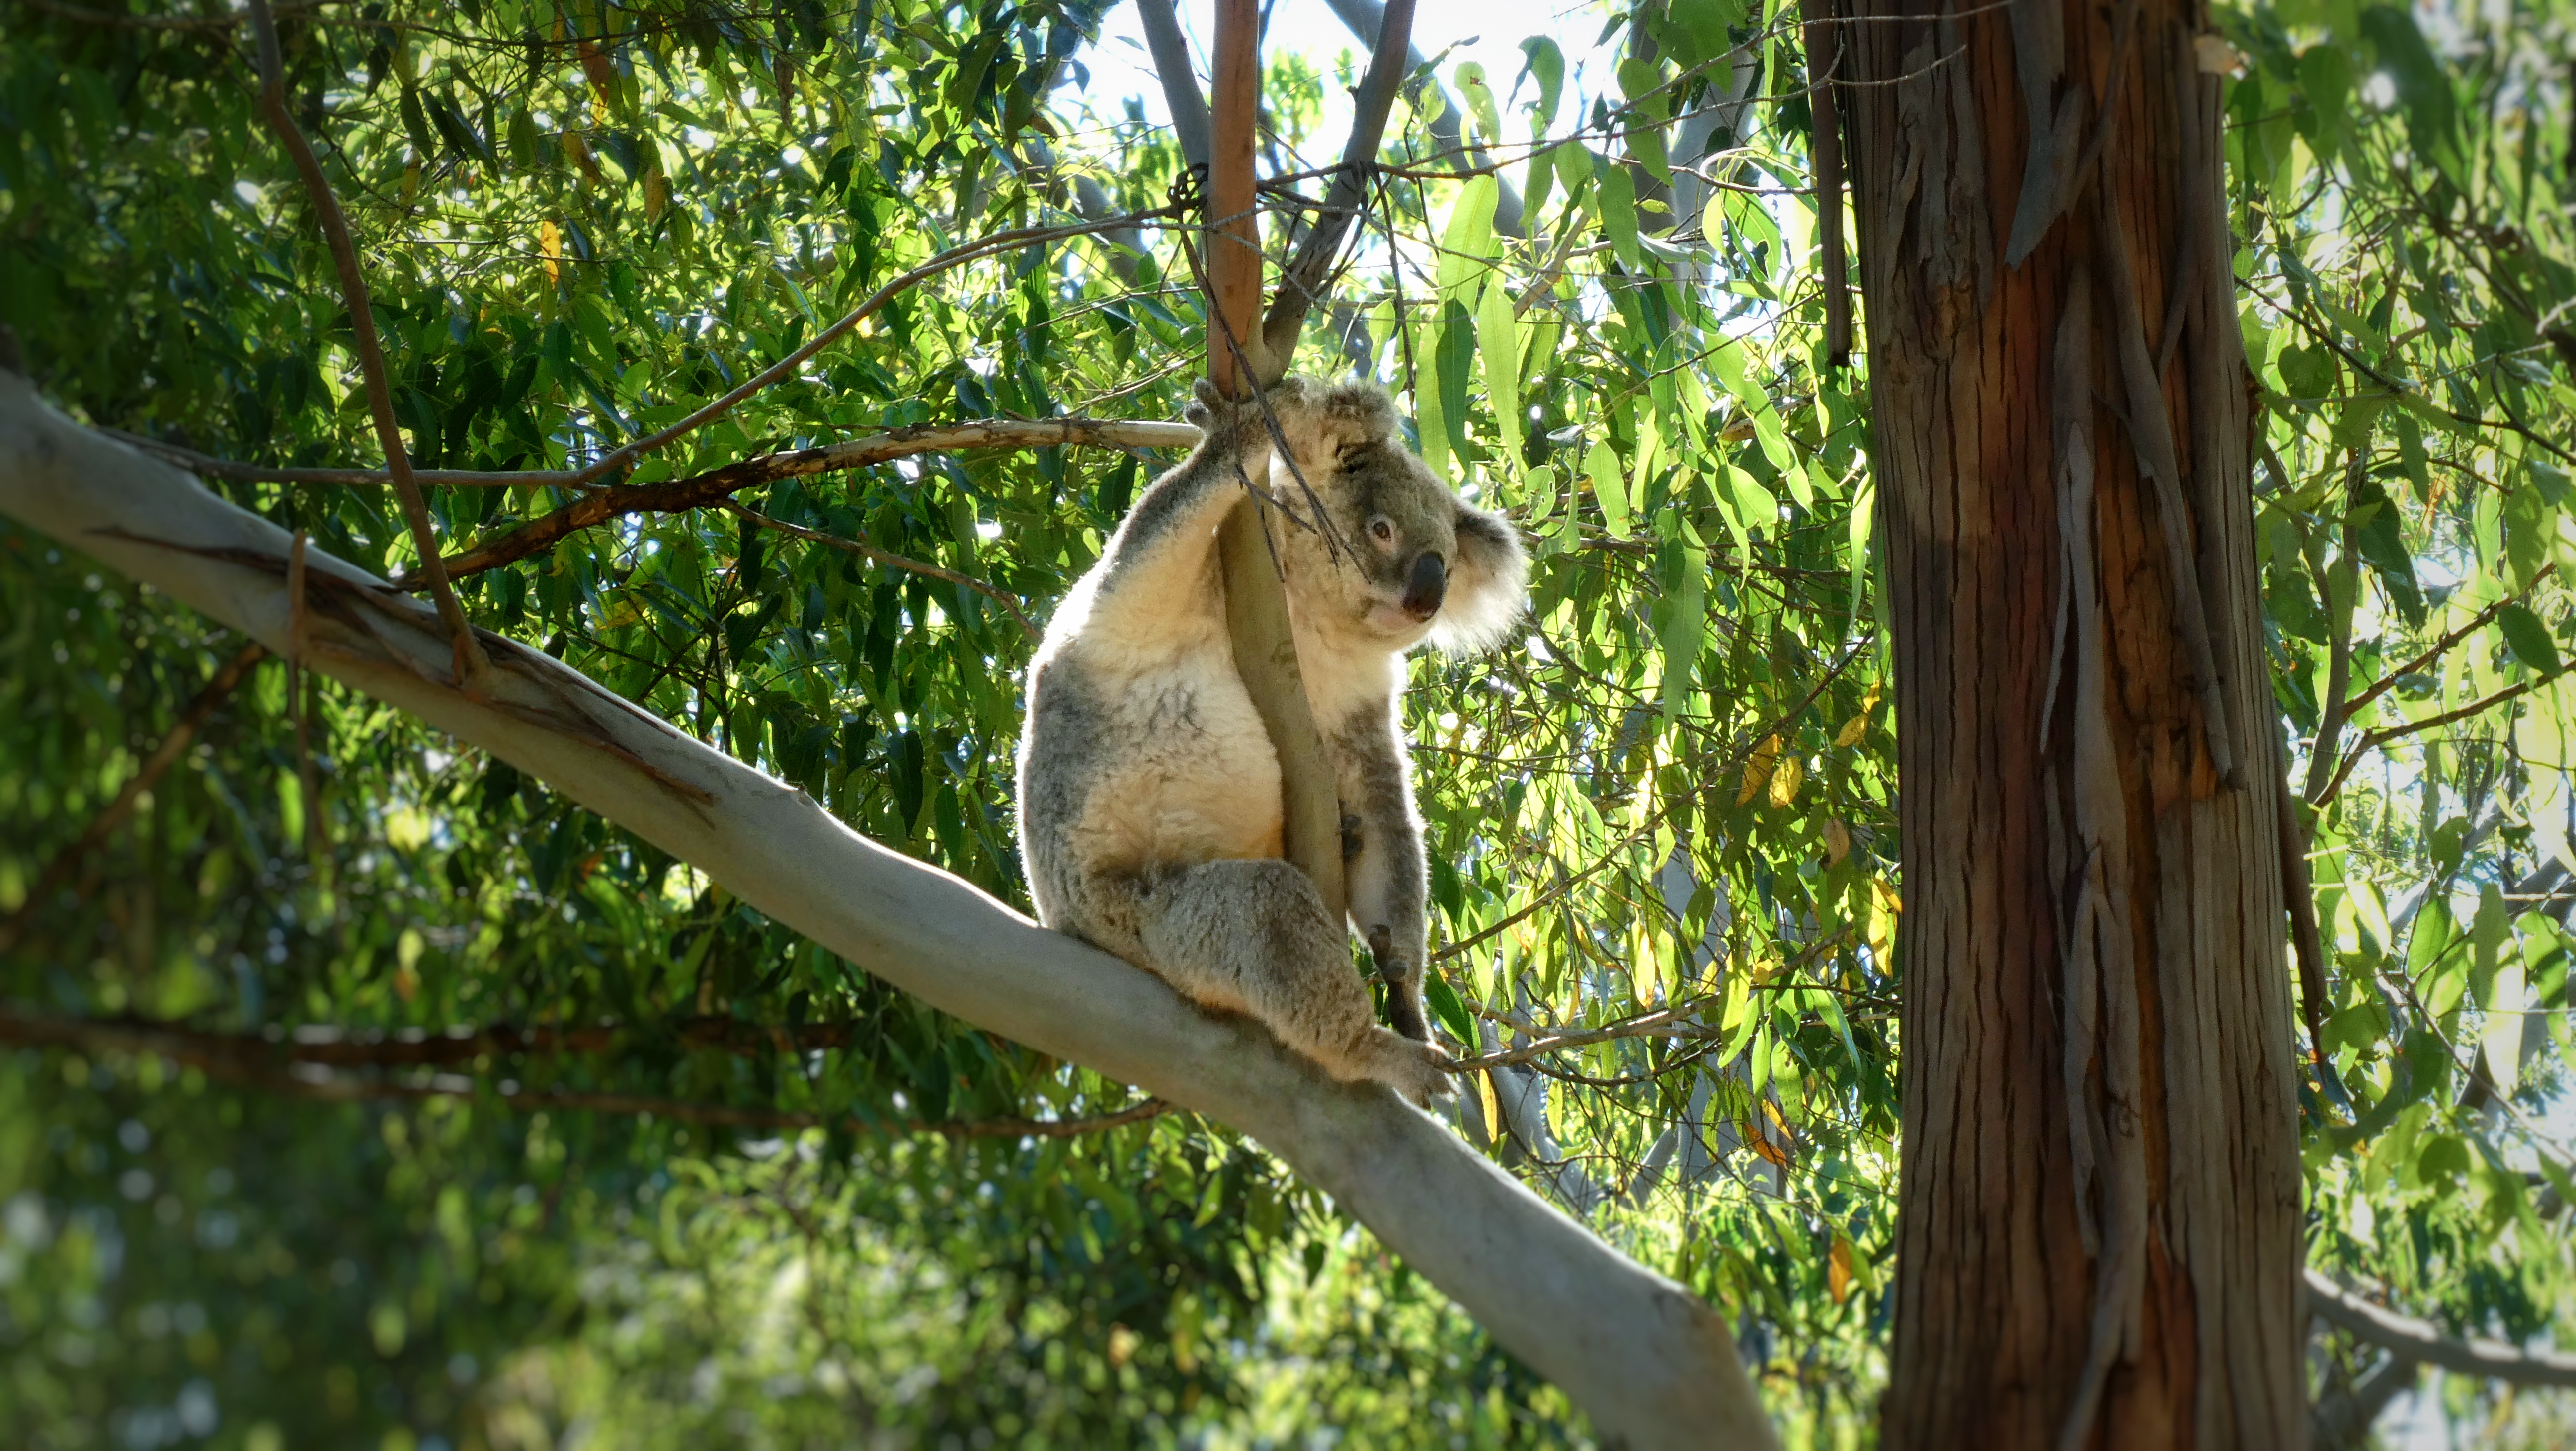 The agony and extinction of Blinky Bill